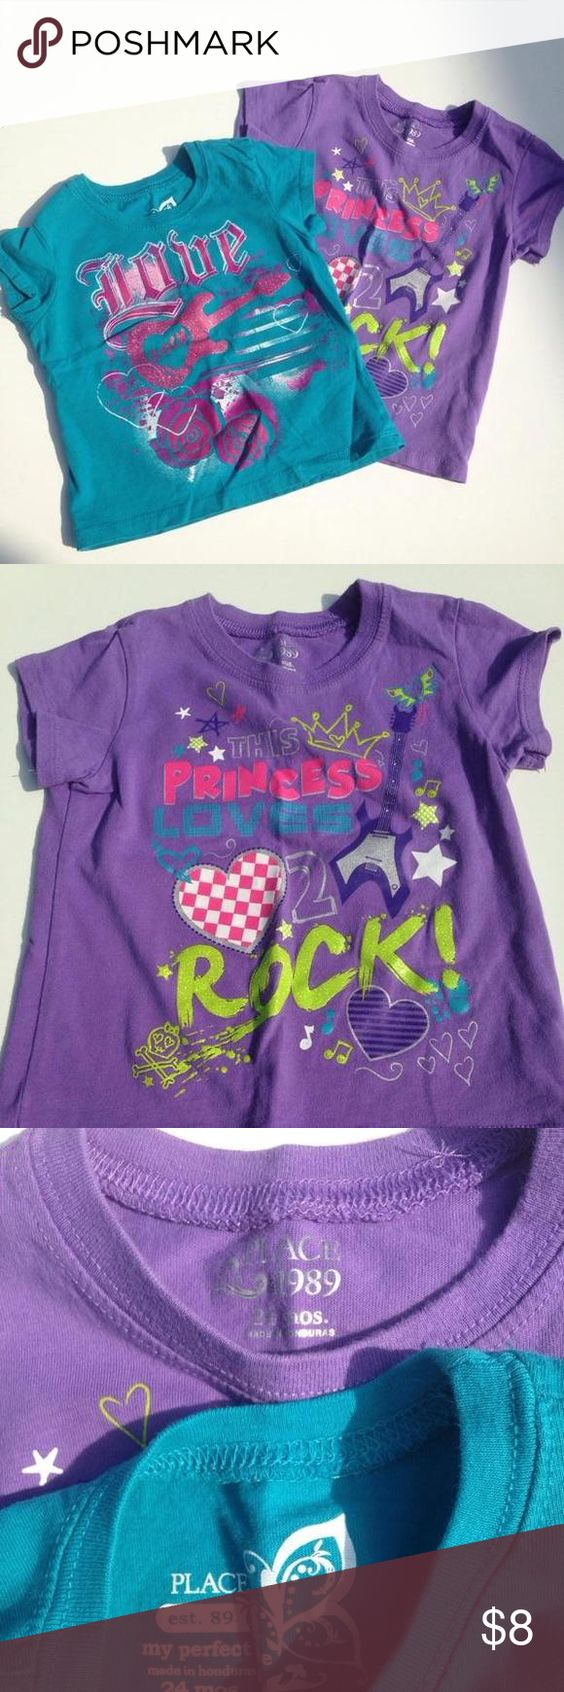 24m Children's Place loves to rock tees Love guitar and this princess loves to rock tops Children's Place Dresses